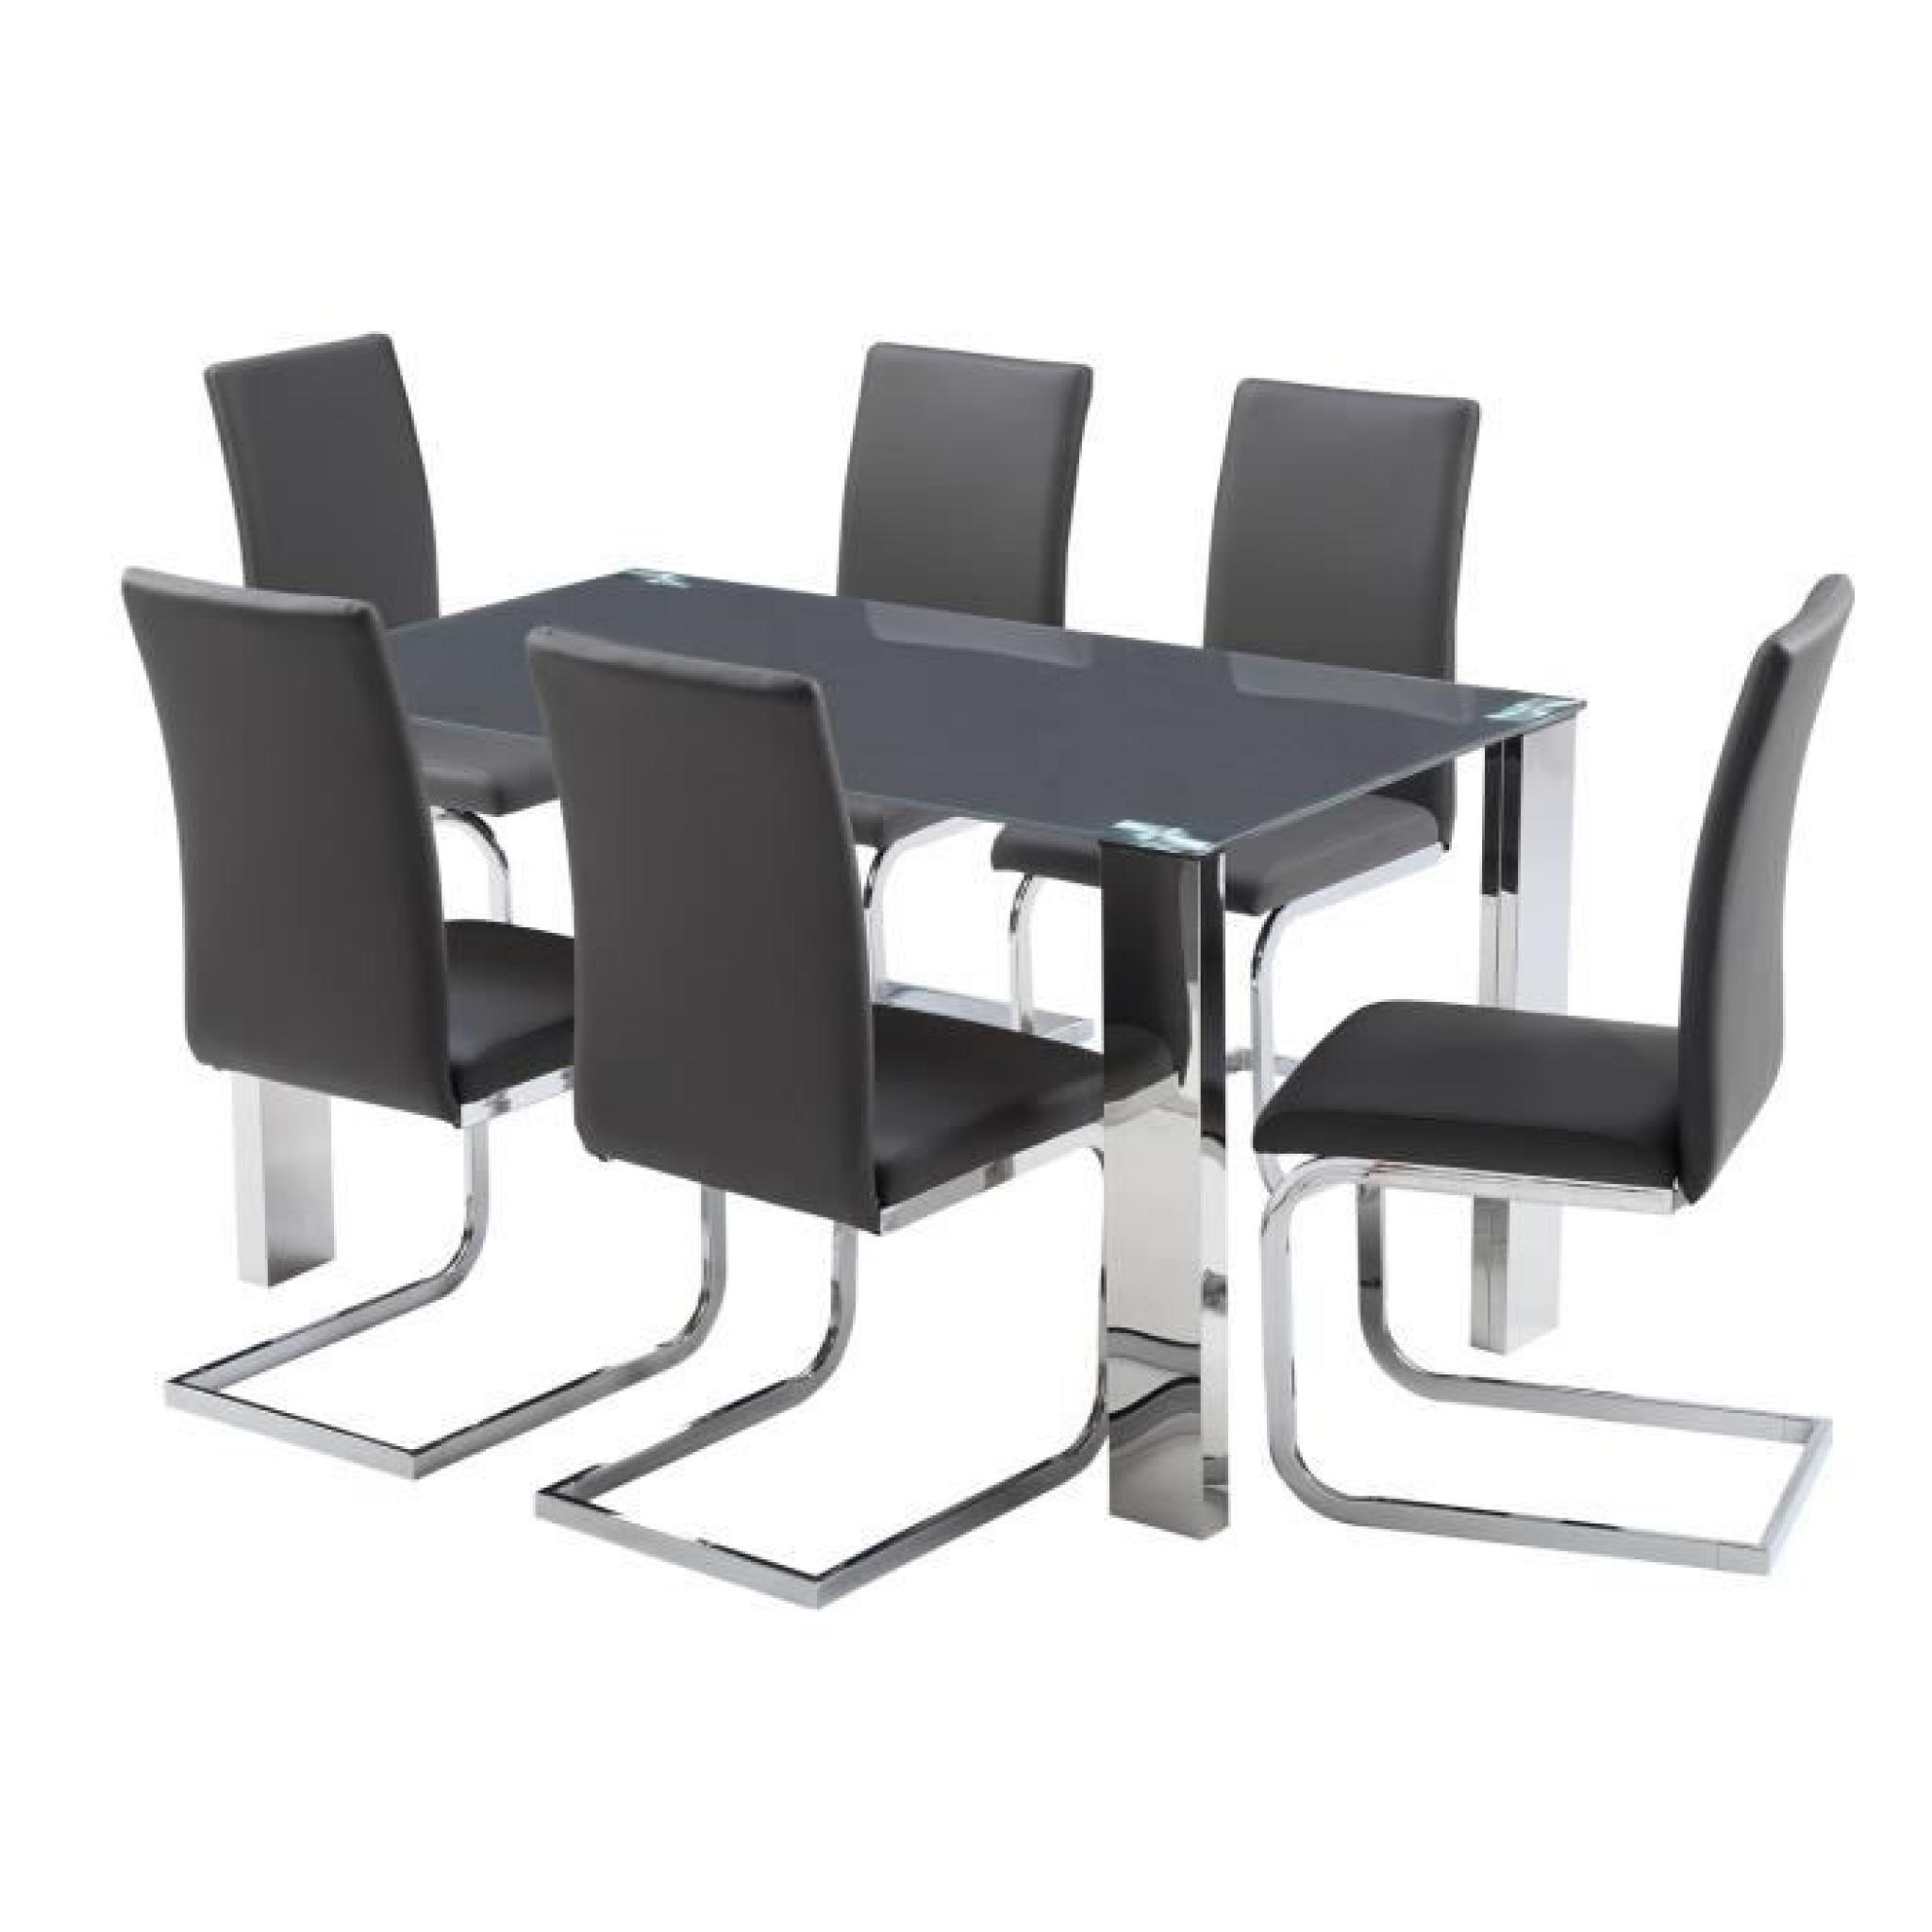 Divine ensemble table manger 6 chaises en pvc gris - Ensemble table et chaise salle a manger ...